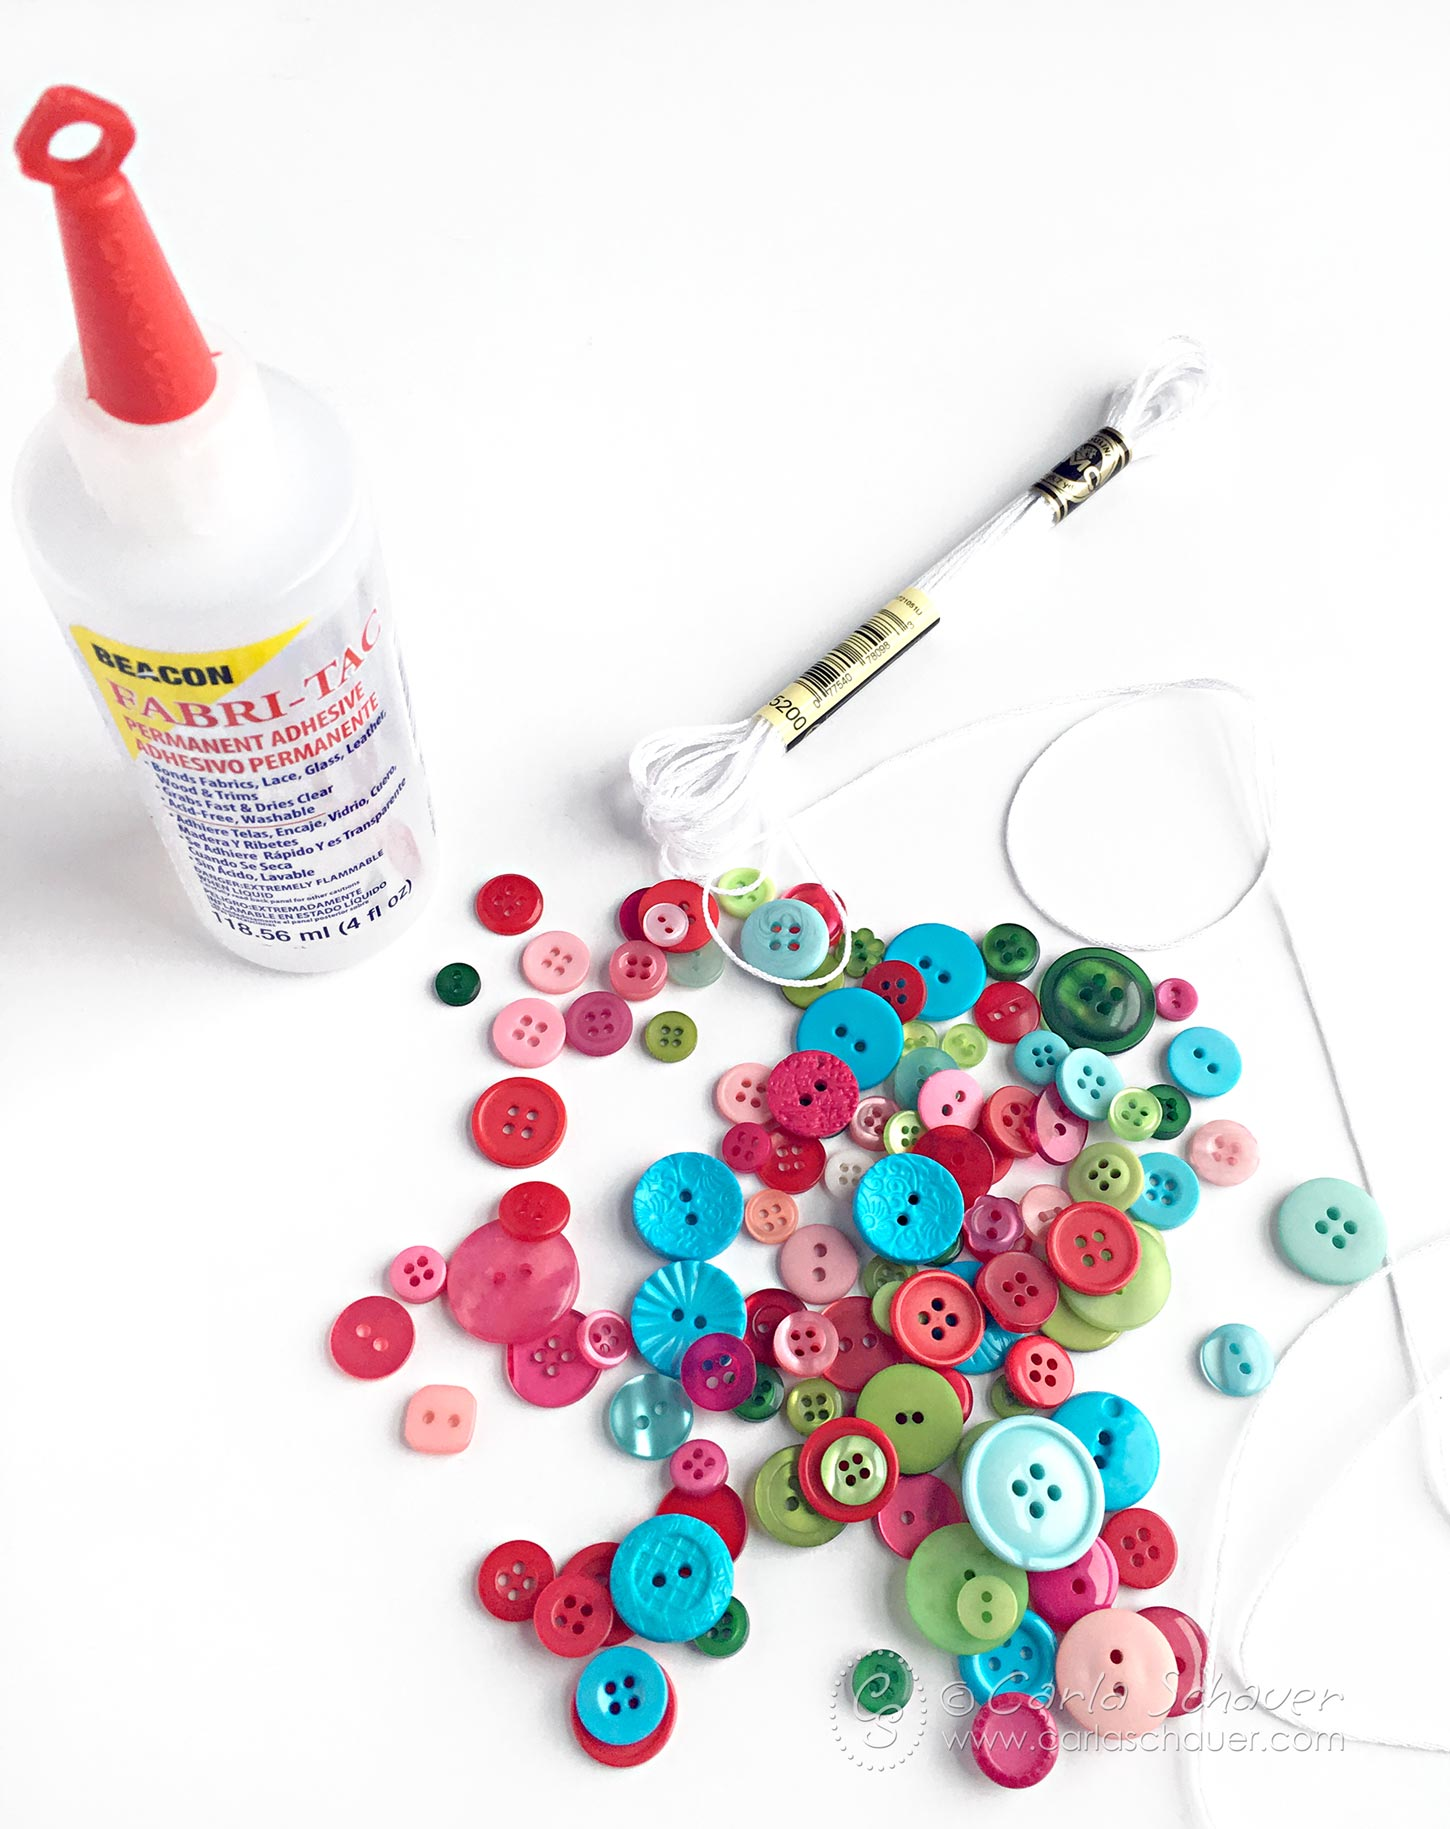 Make a DIY Button Garland for Christmas. | Easy holiday craft from Carla Schauer Studio